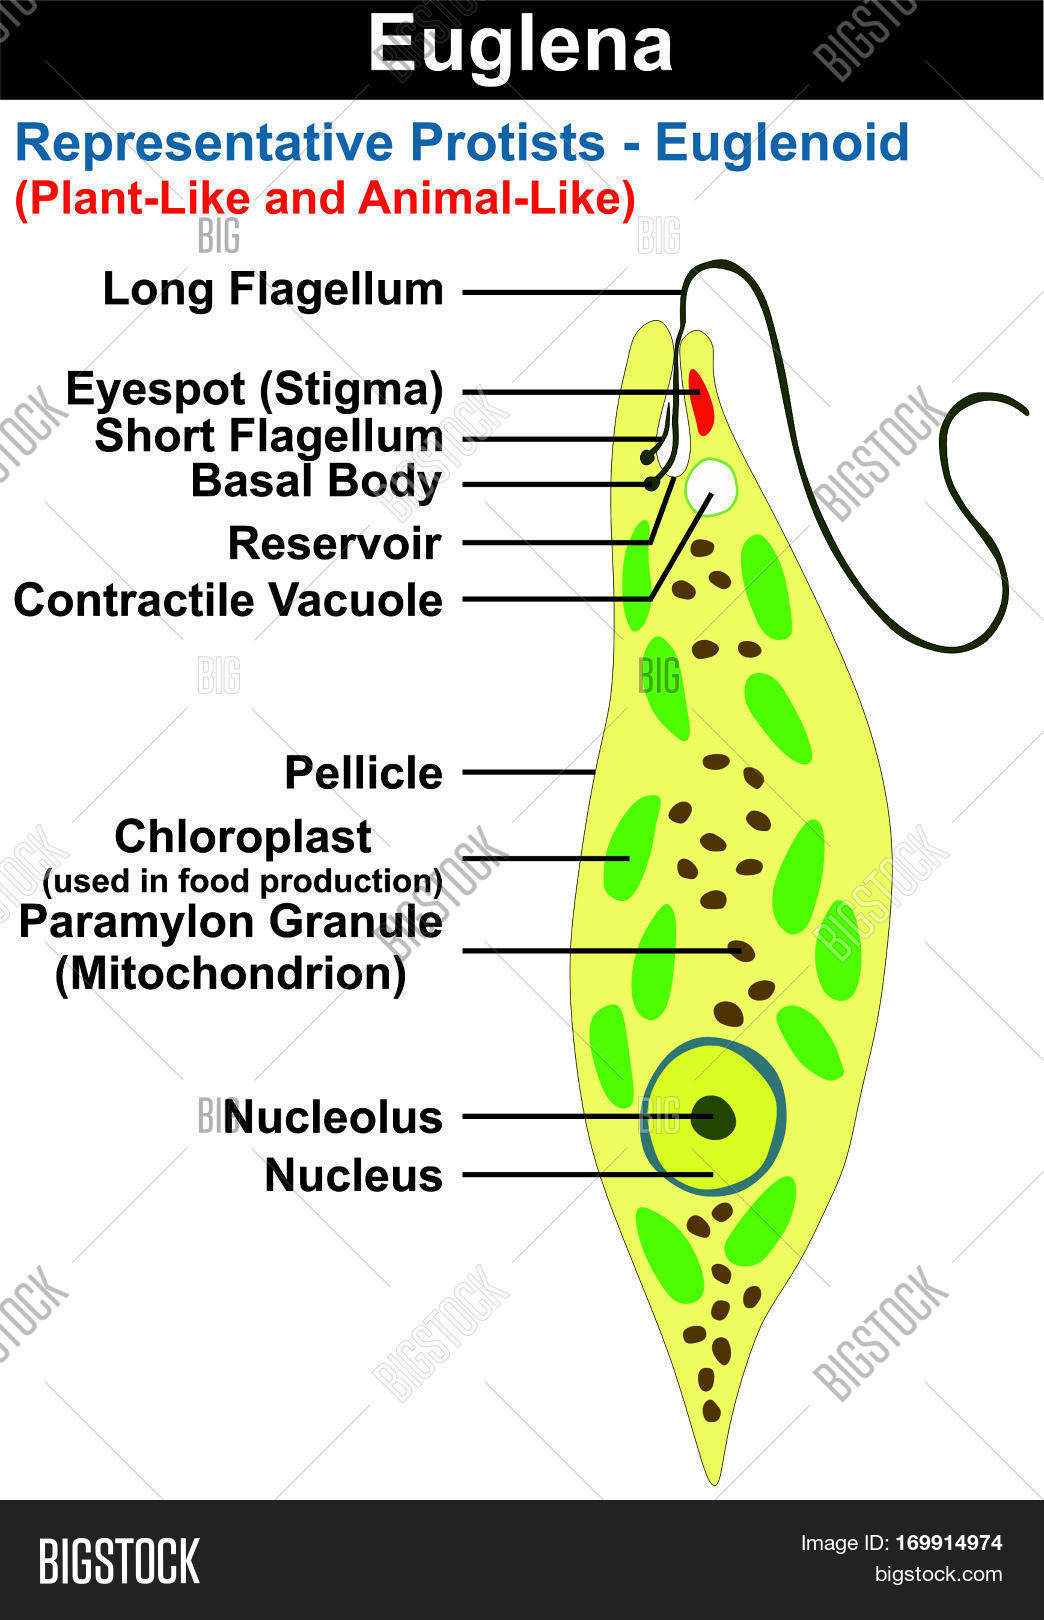 hight resolution of euglena cross section diagram representative protists euglenoid plant like and animal like microscopic creature all